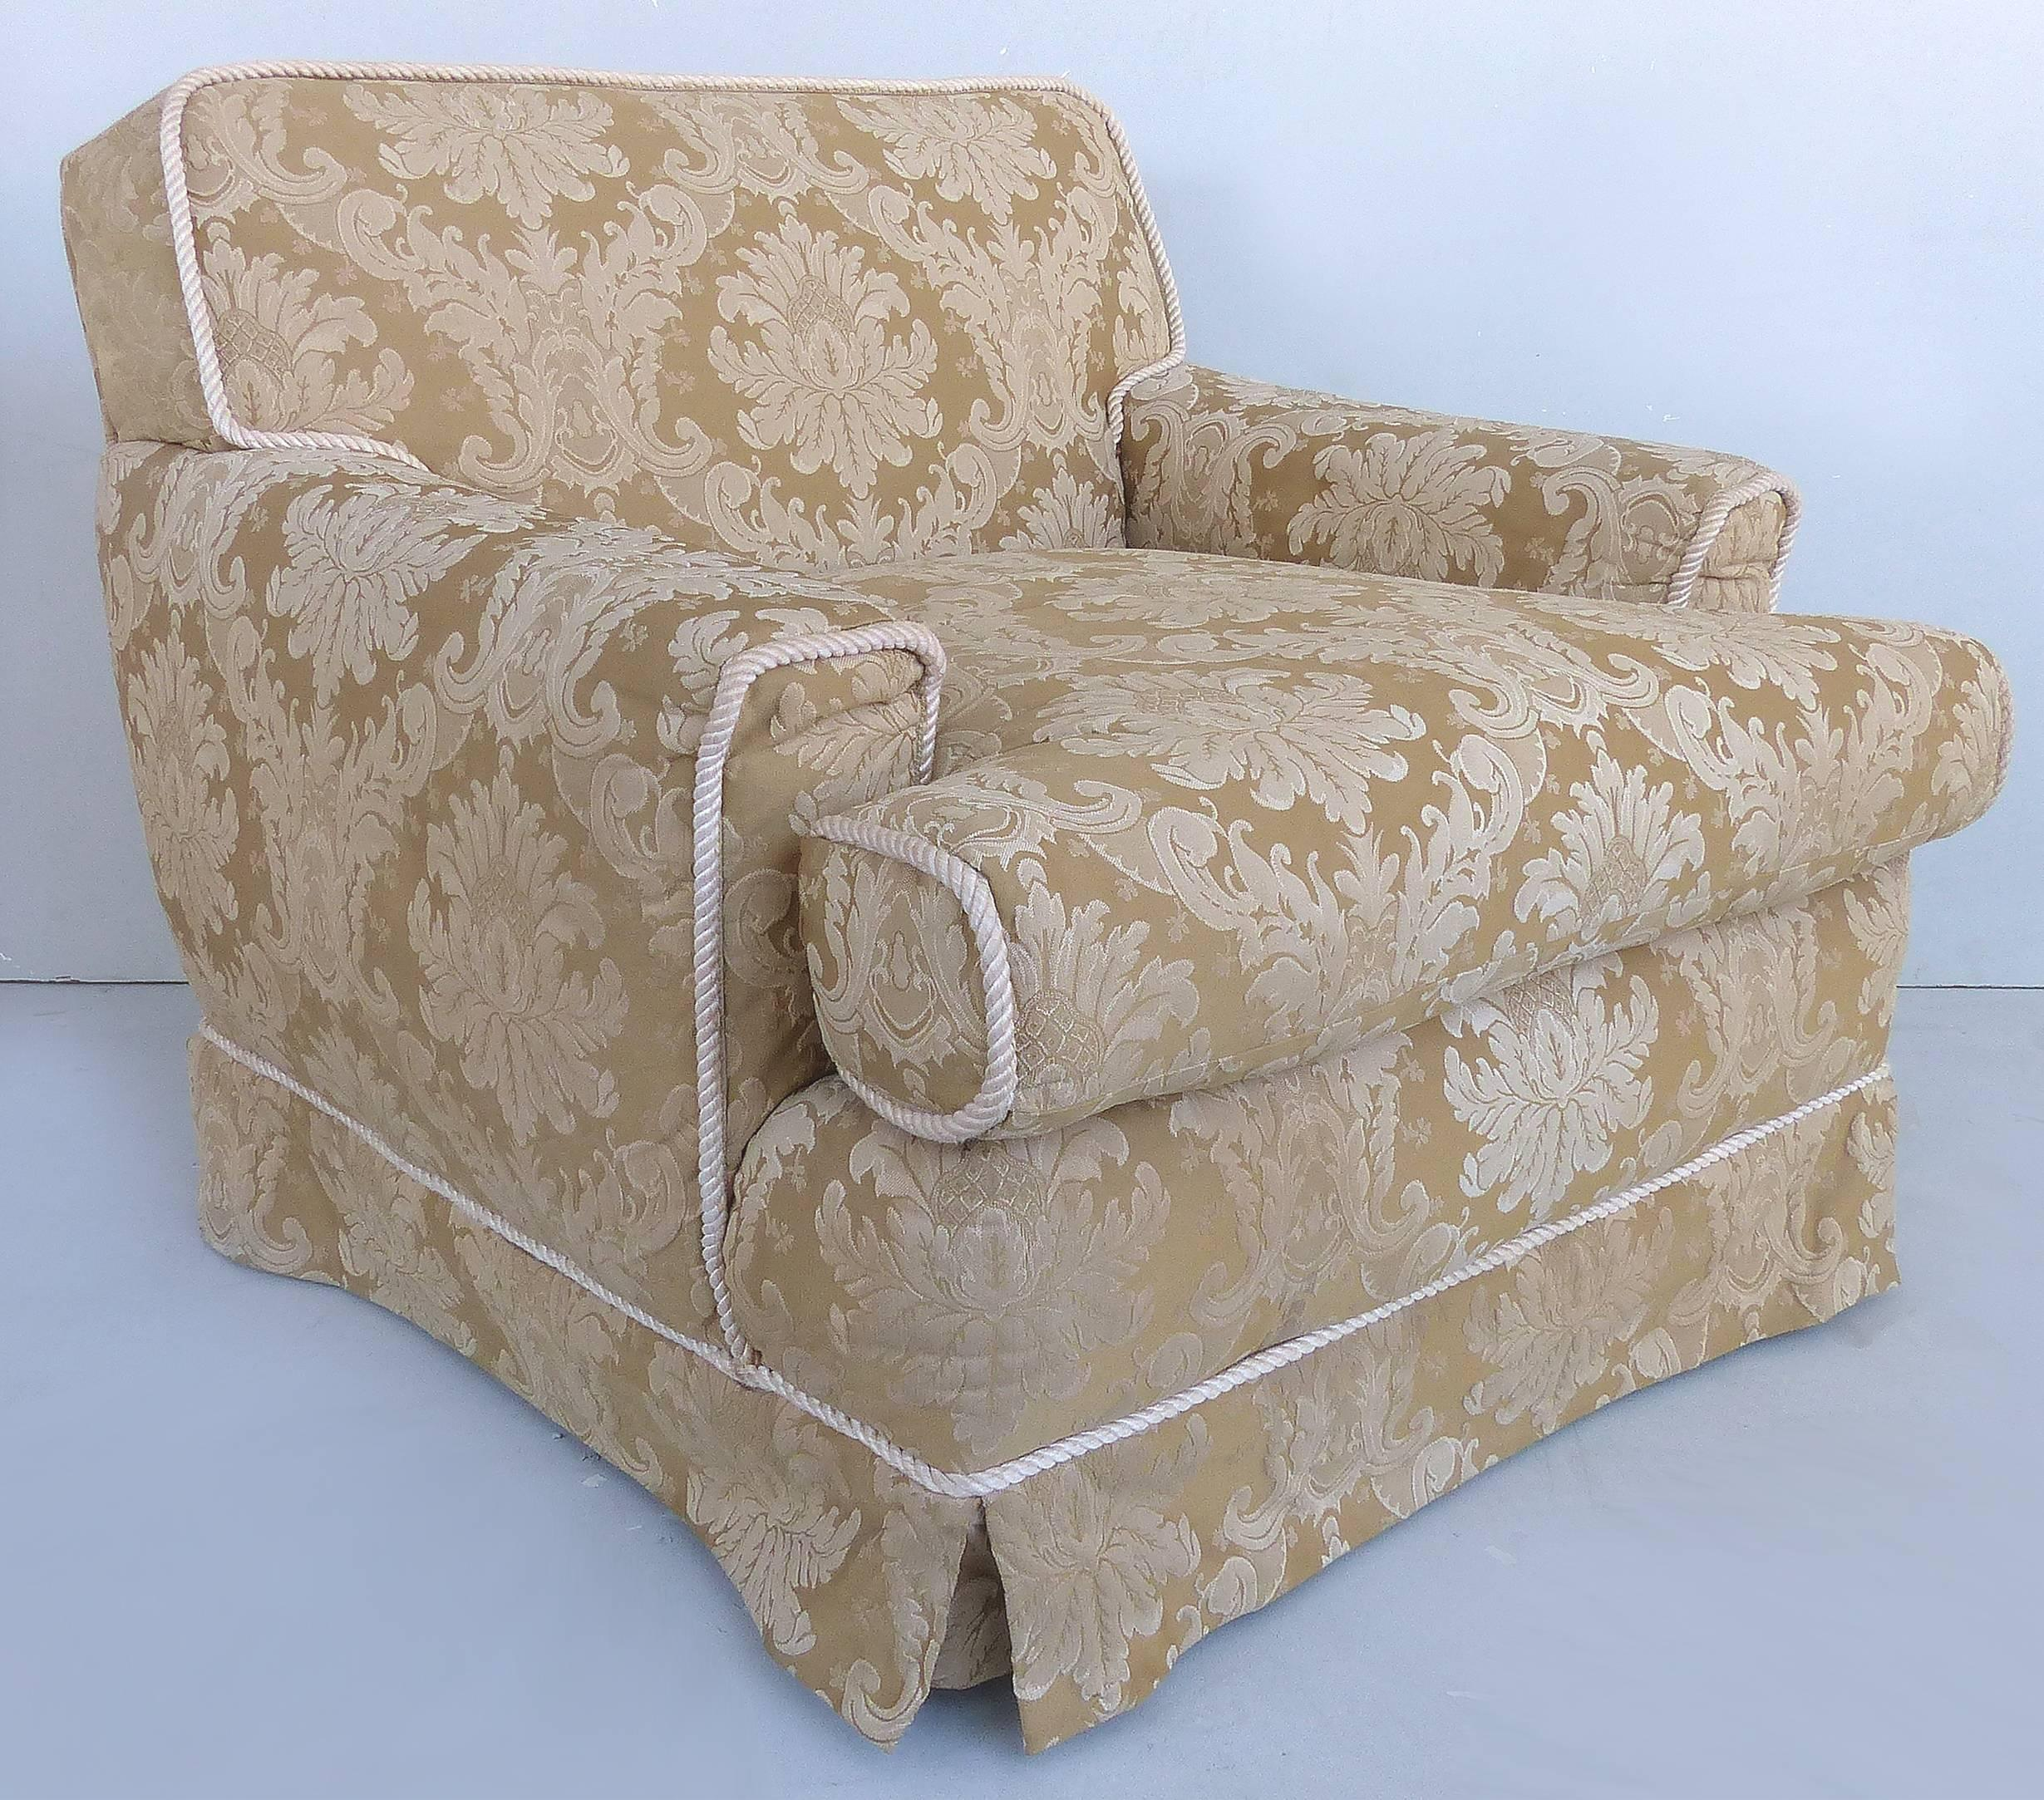 Damask Club Chairs With Down Filled Cushions, Skirted Bottom And Rope Trim  In Good